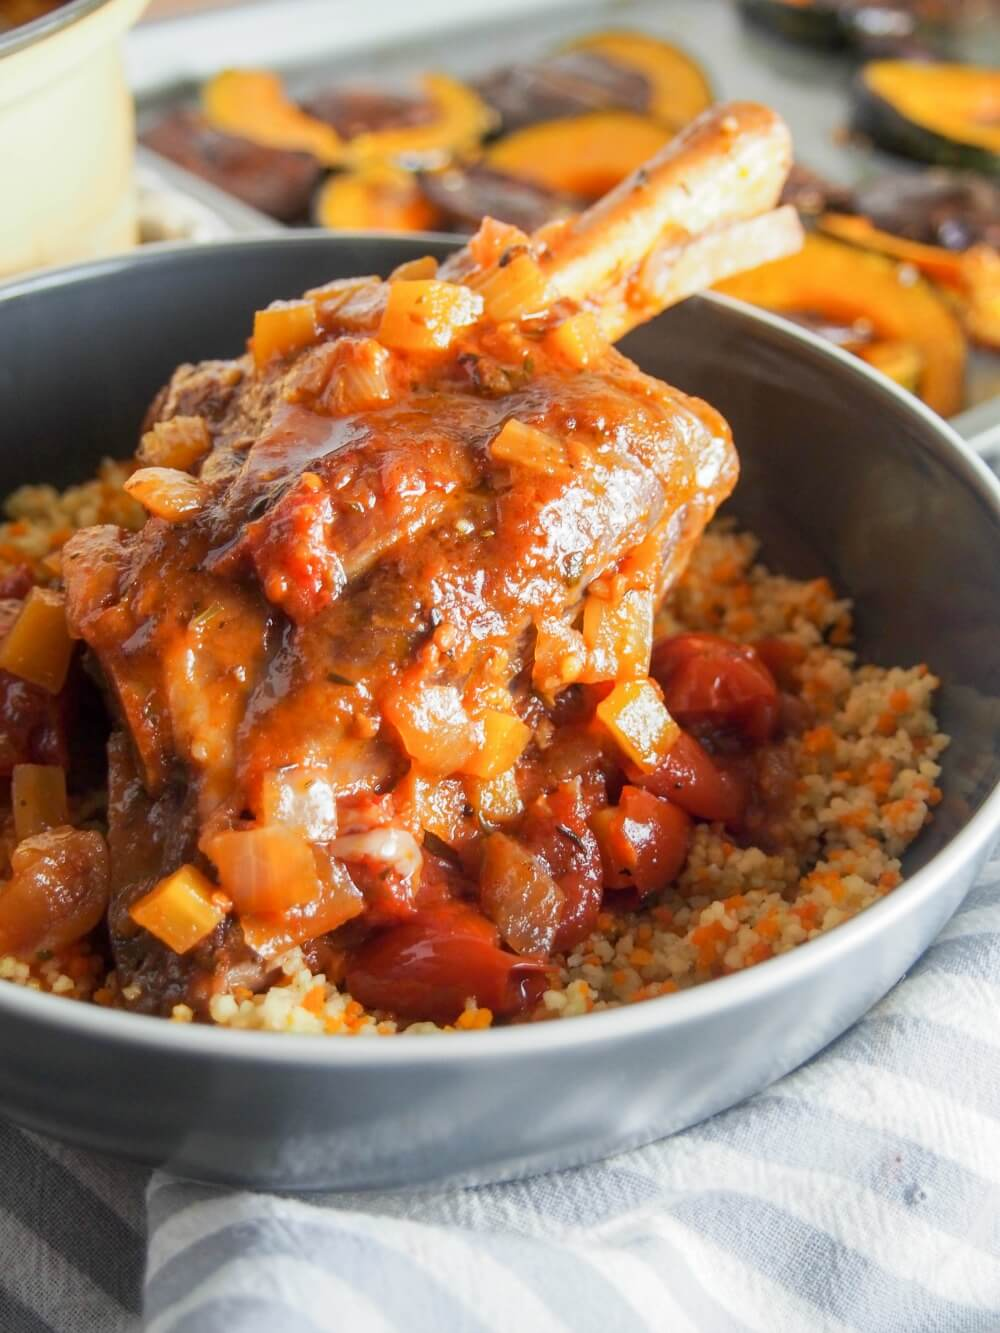 You need to be a little patient to enjoy these braised lamb shanks, but they're easy to prepare and so worth the wait. Rich, tender and delicious. The meat is tender and the sauce is so full of flavor. Comfort food at its best.